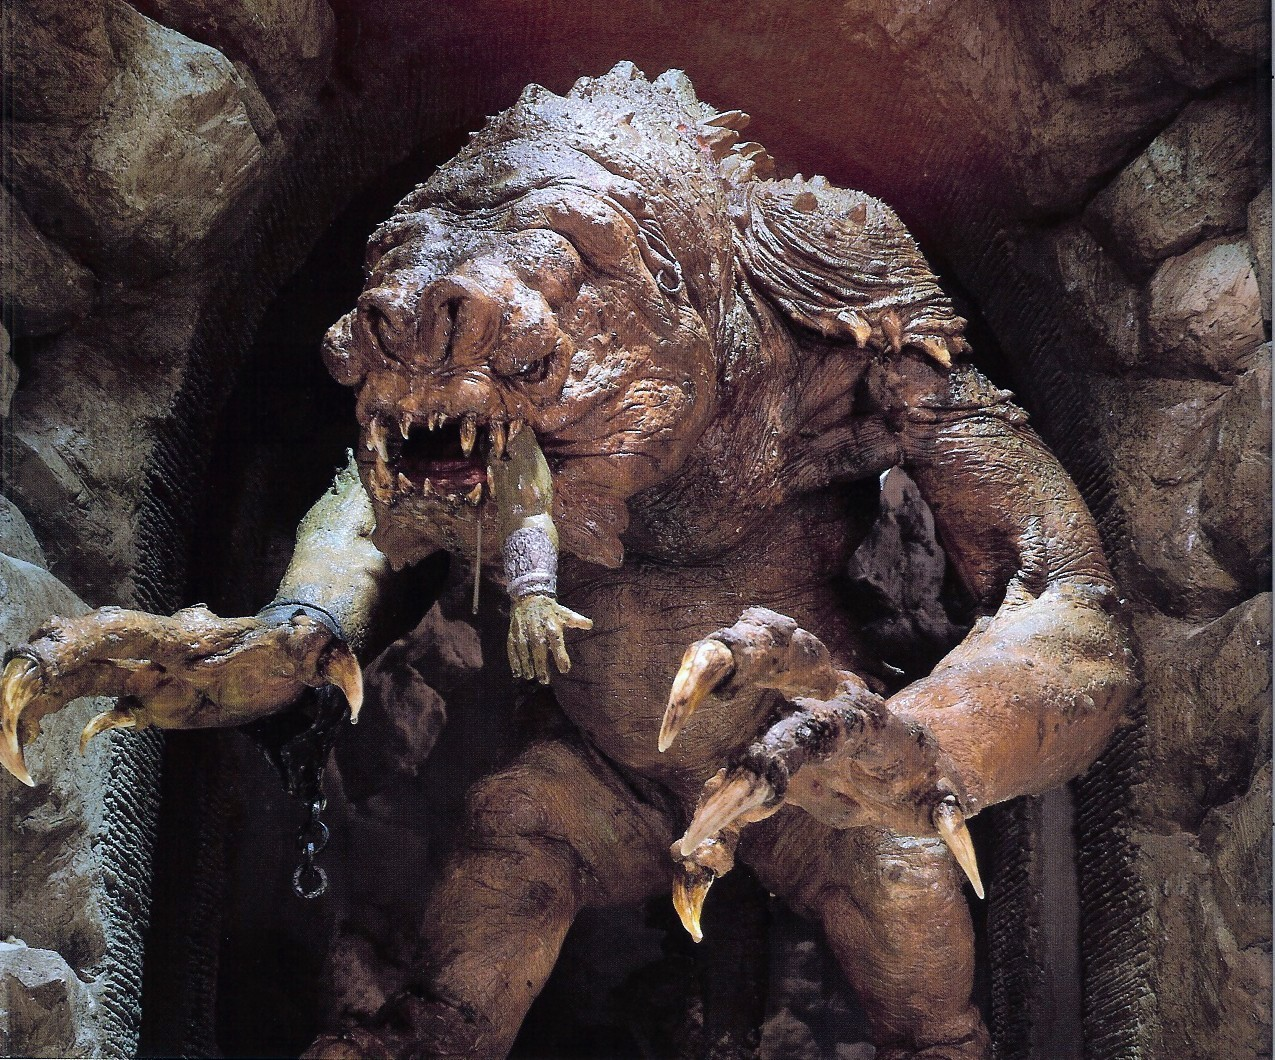 Jabba's rancor | Wookieepedia | FANDOM powered by Wikia